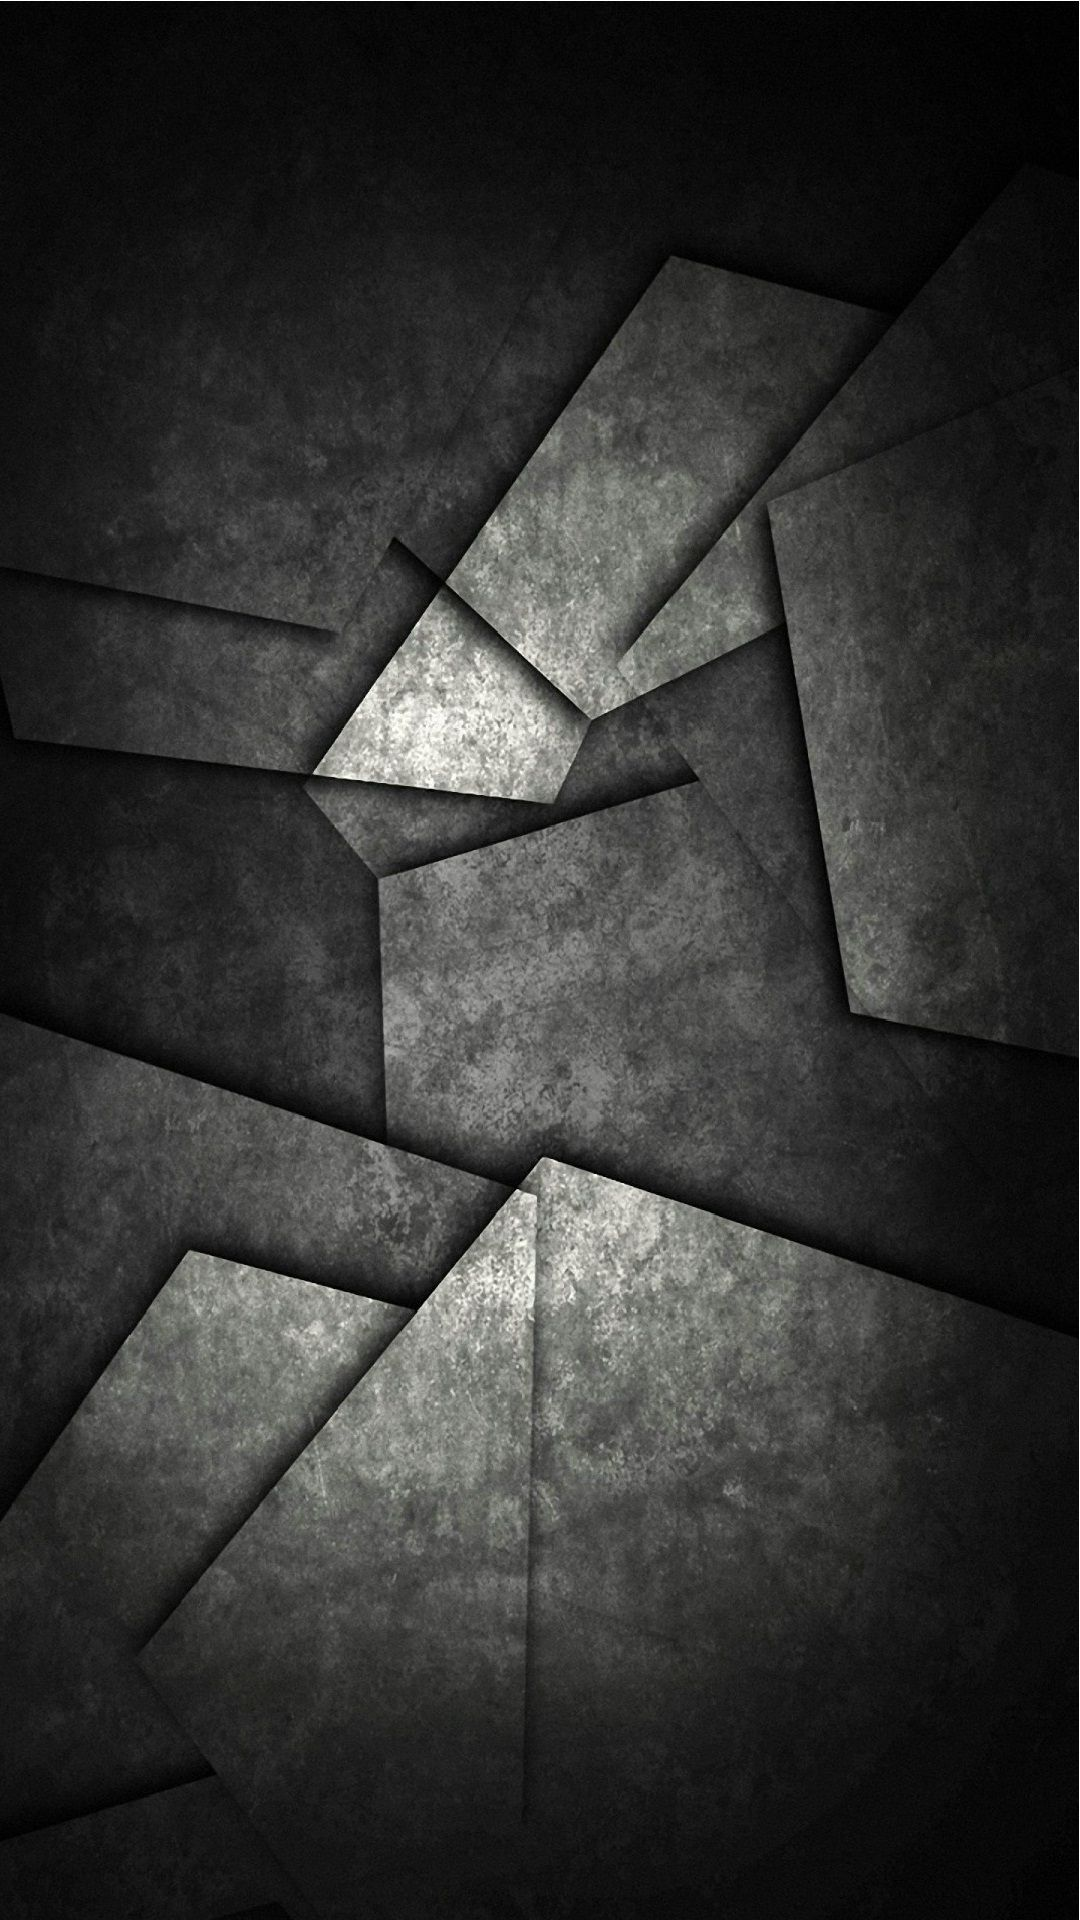 Abstract Wallpaper For Mobile Android   Samsung Galaxy A10 Back 1080x1920